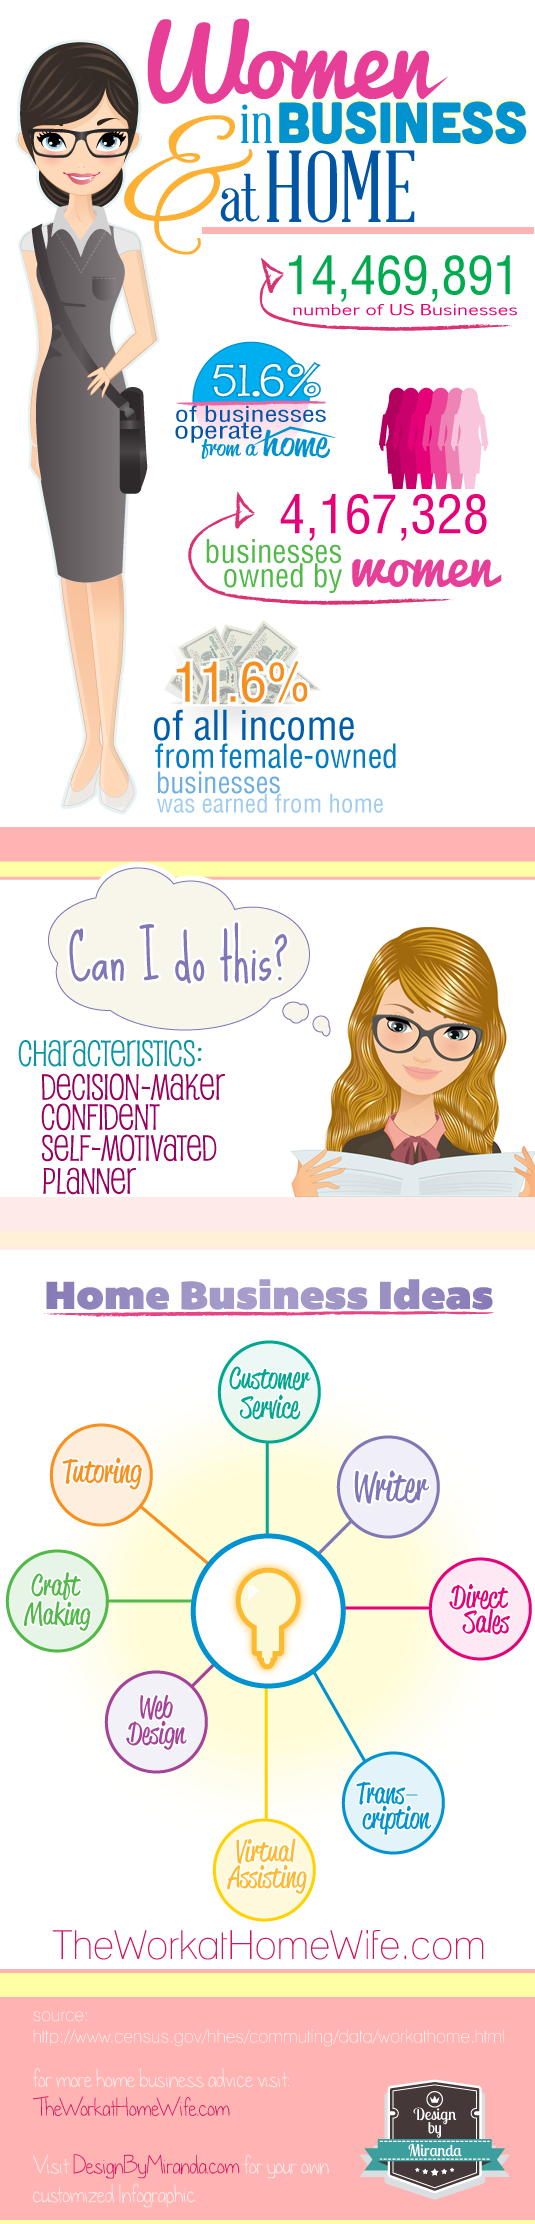 Home Business Ideas For Women Infographic Business Pinterest